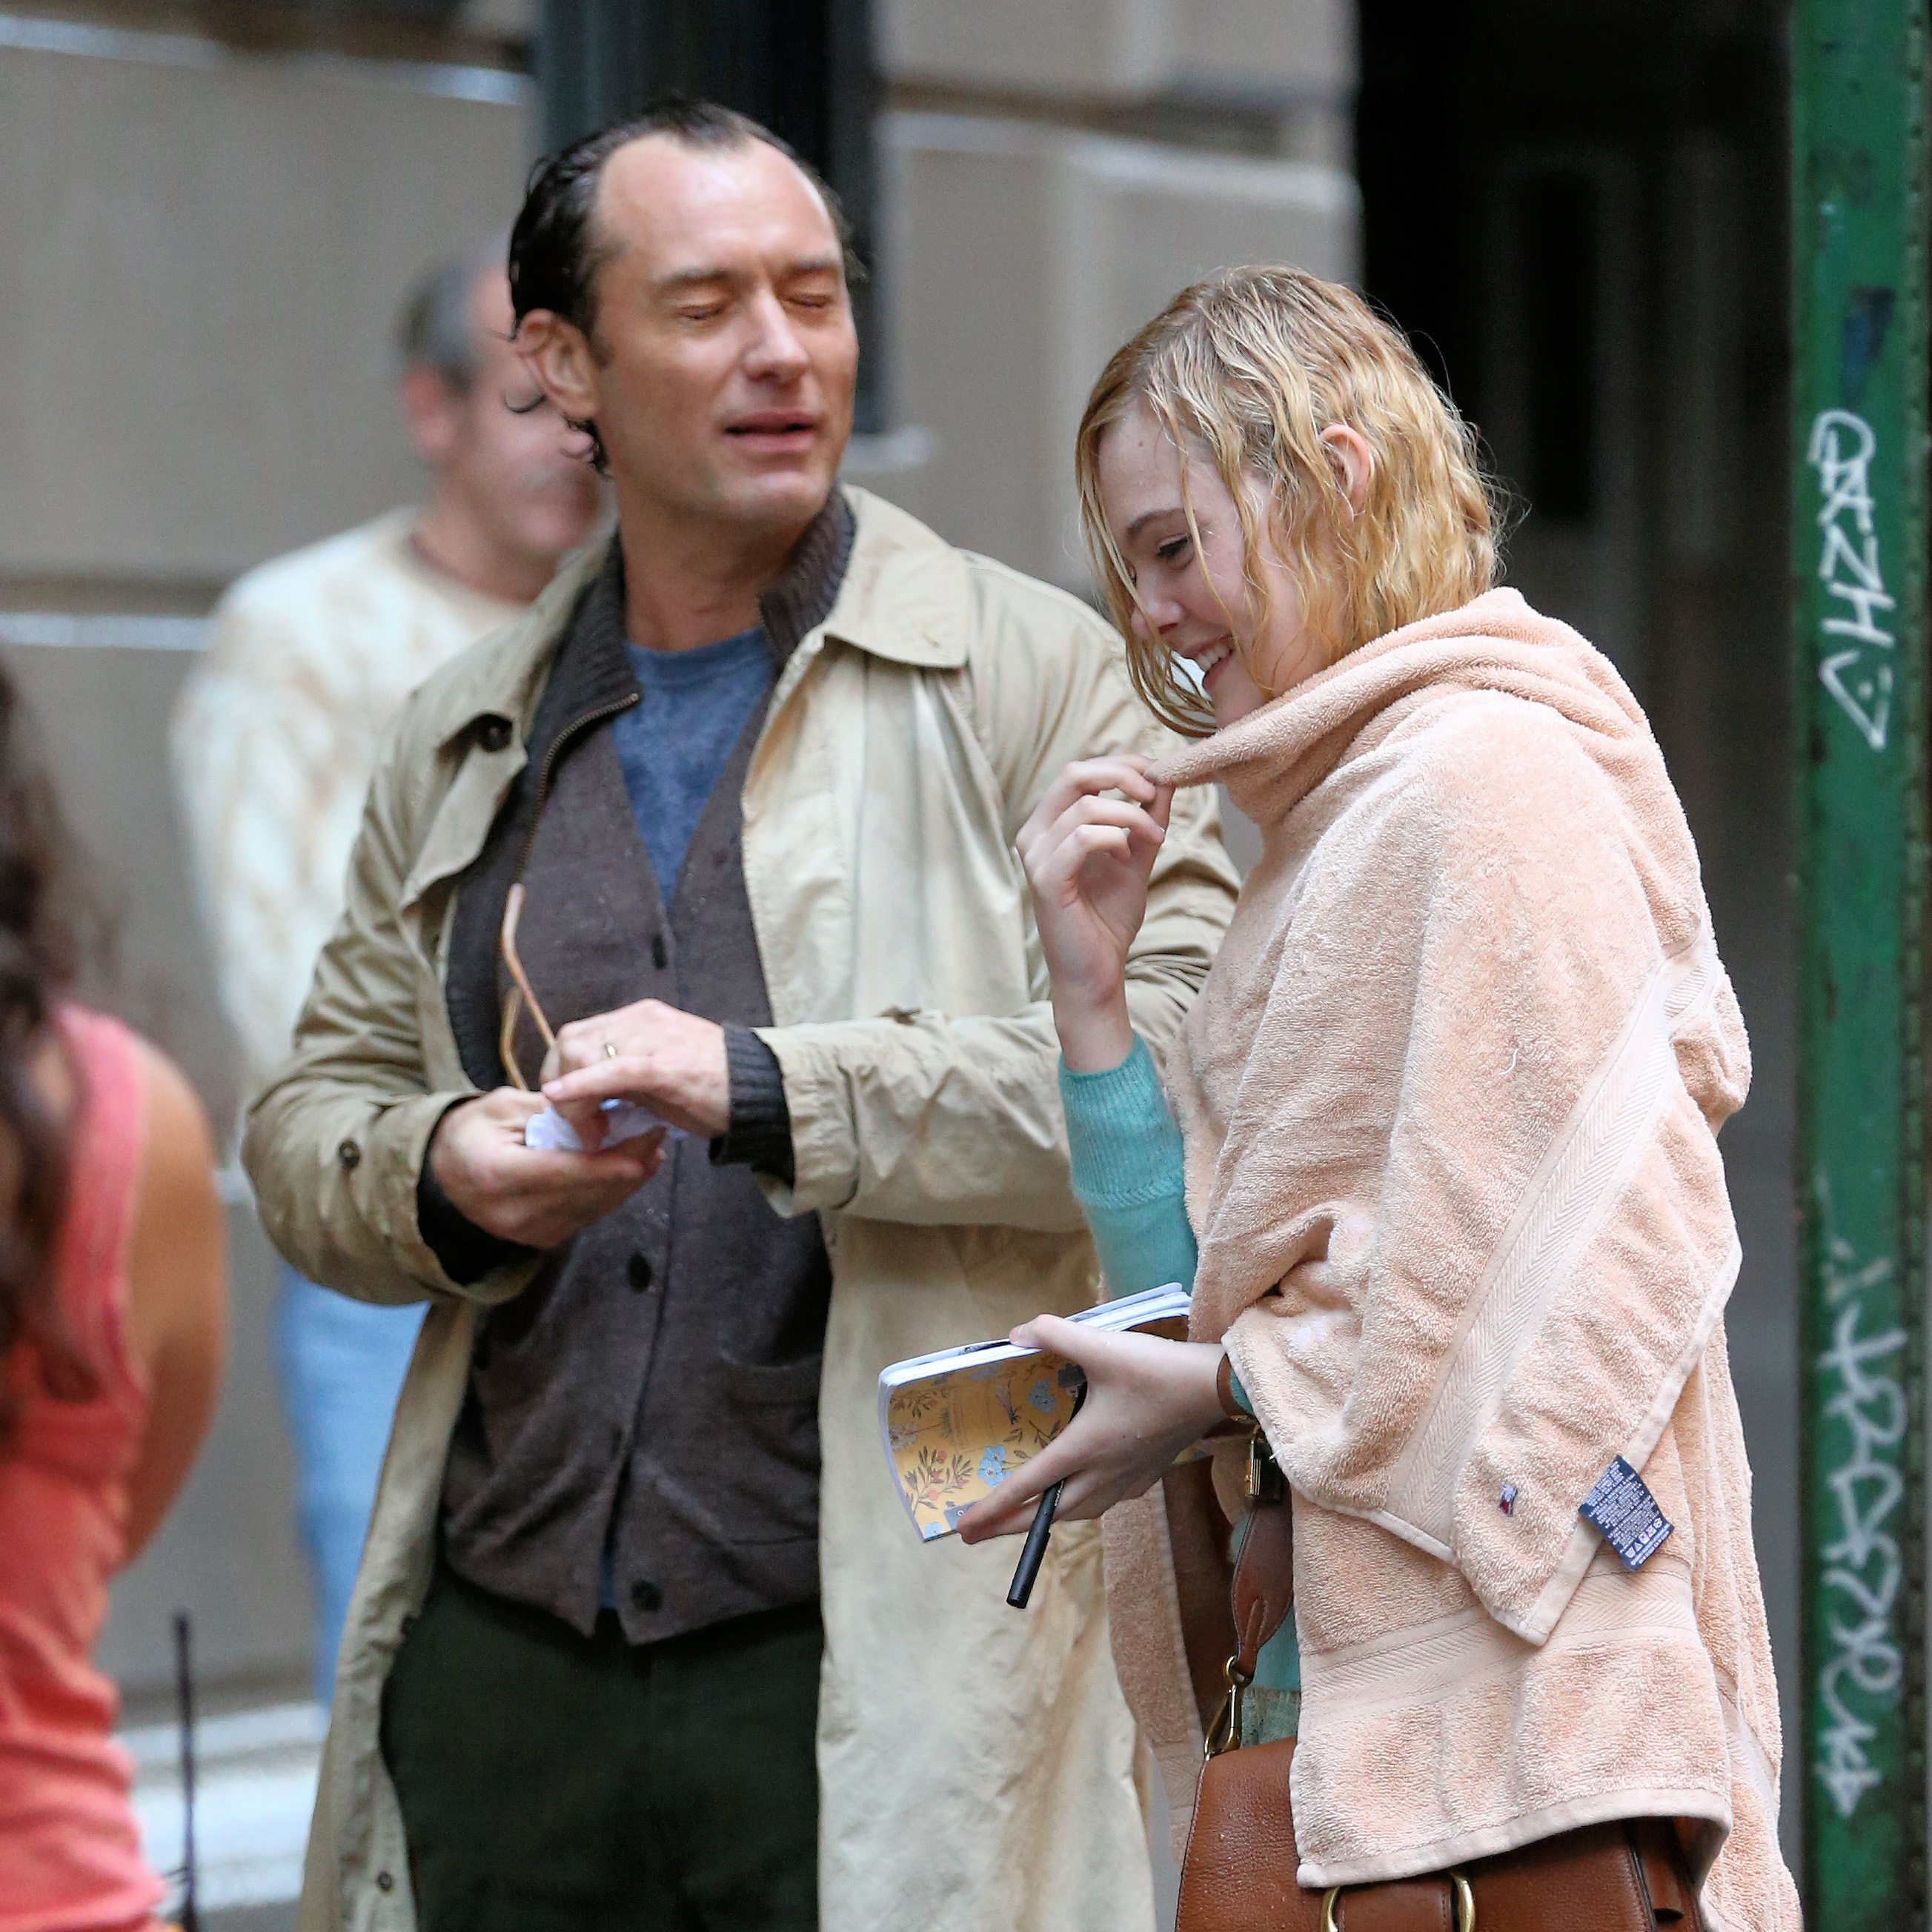 Jude Law and Elle Fanning on the set in New York City on Oct. 18, 2017.